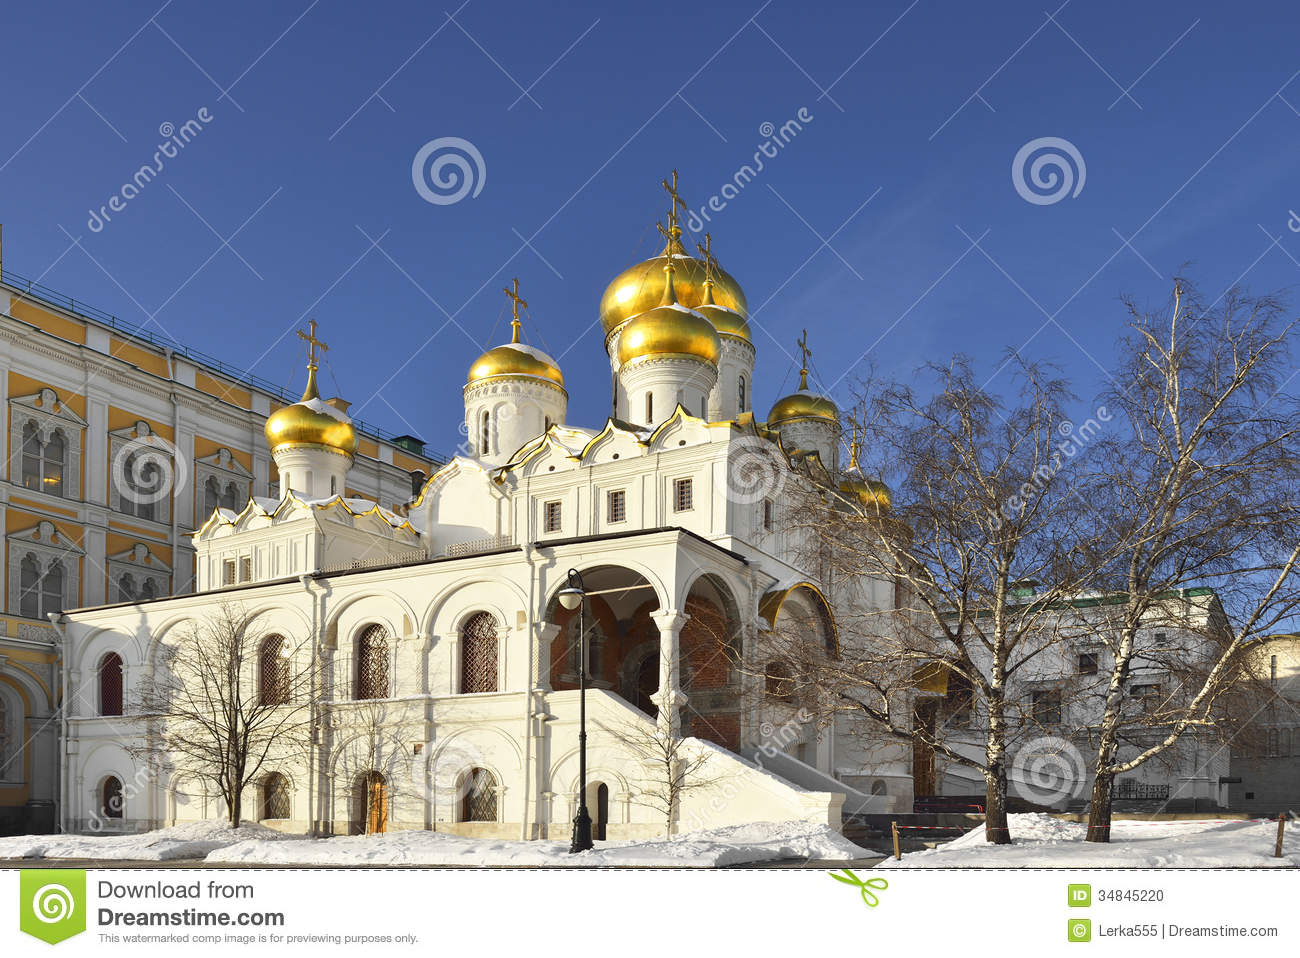 Cathedral of the annunciation clipart #14